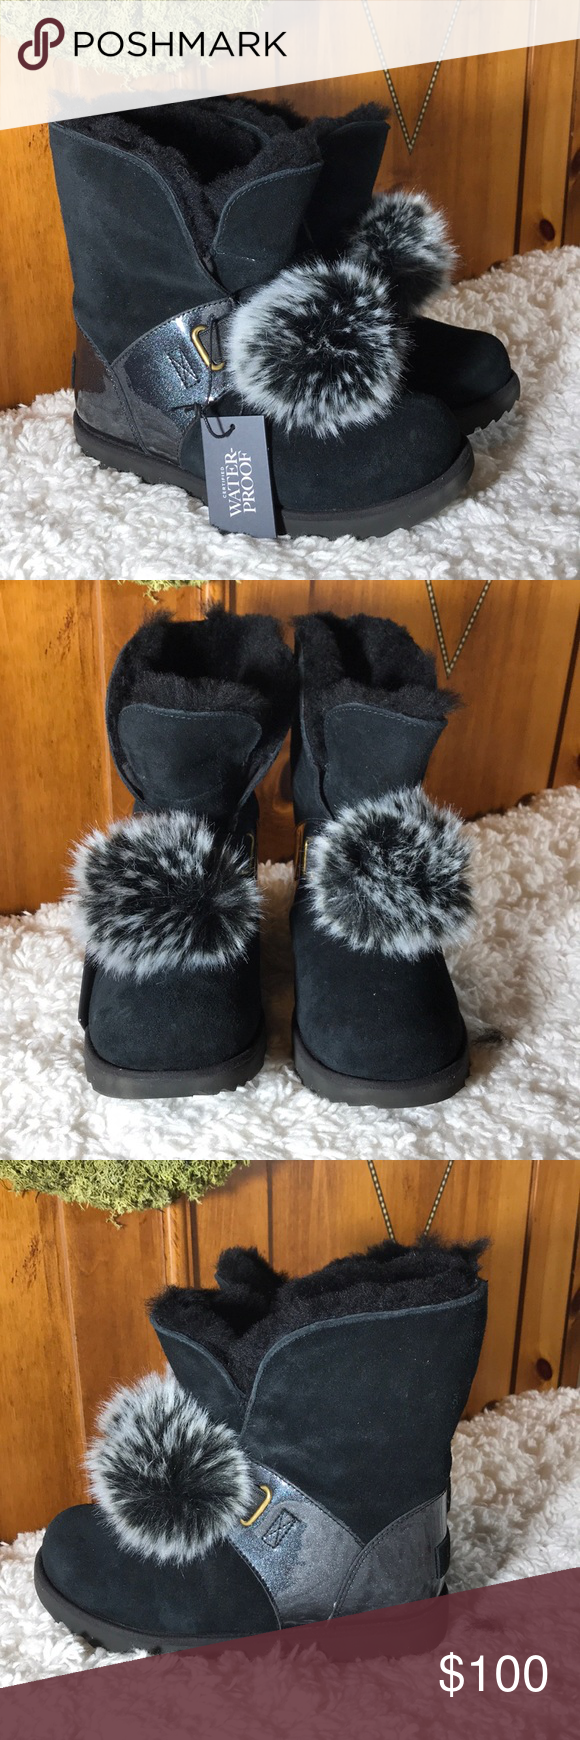 UGG Isley girls black boots - SZ 1 or 3 - NWT Adorable and practical! Brand new with store tags, box not included. UGG Shoes Rain & Snow Boots #uggbootsoutfitblackgirl UGG Isley girls black boots - SZ 1 or 3 - NWT Adorable and practical! Brand new with store tags, box not included. UGG Shoes Rain & Snow Boots #uggbootsoutfitblackgirl